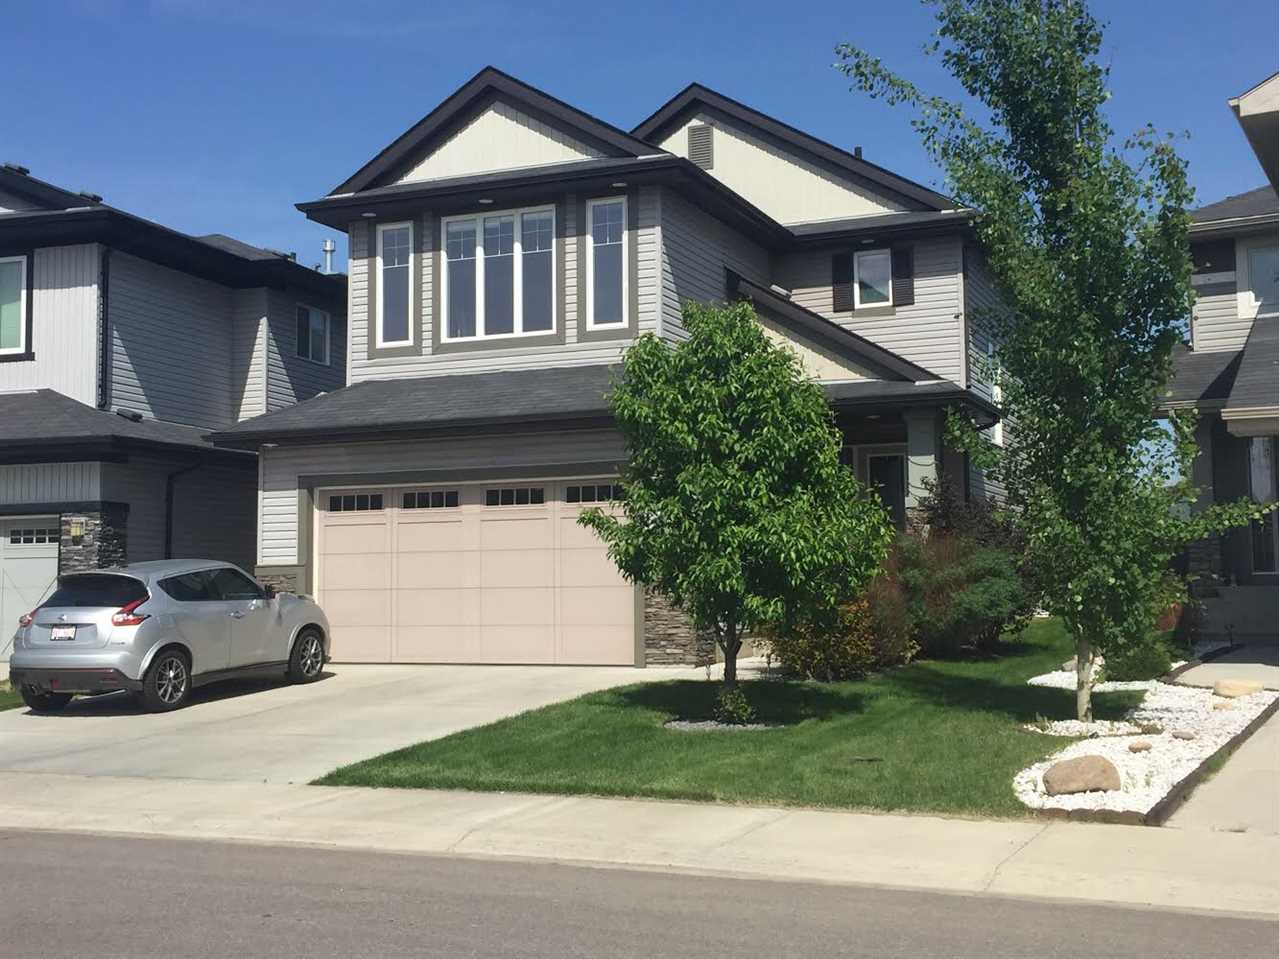 Main Photo: 3642 GOODRIDGE Crescent in Edmonton: Zone 58 House for sale : MLS(r) # E4052566